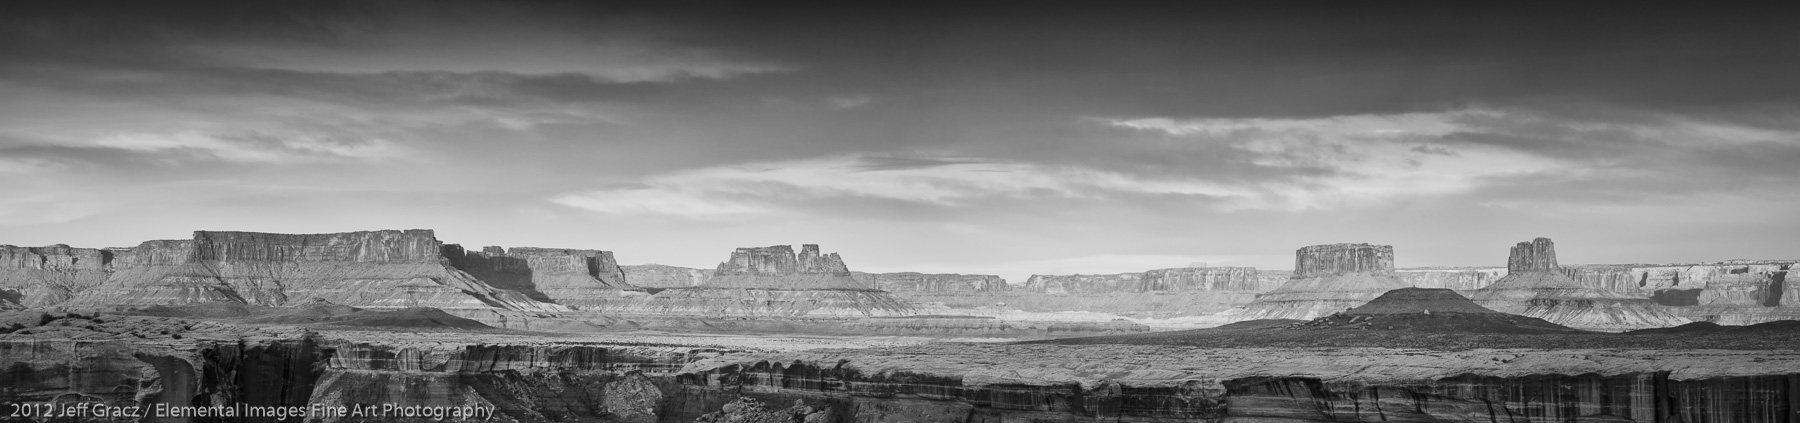 Distant Buttes | Canyonlands National Park | UT | USA - © 2012 Jeff Gracz / Elemental Images Fine Art Photography - All Rights Reserved Worldwide